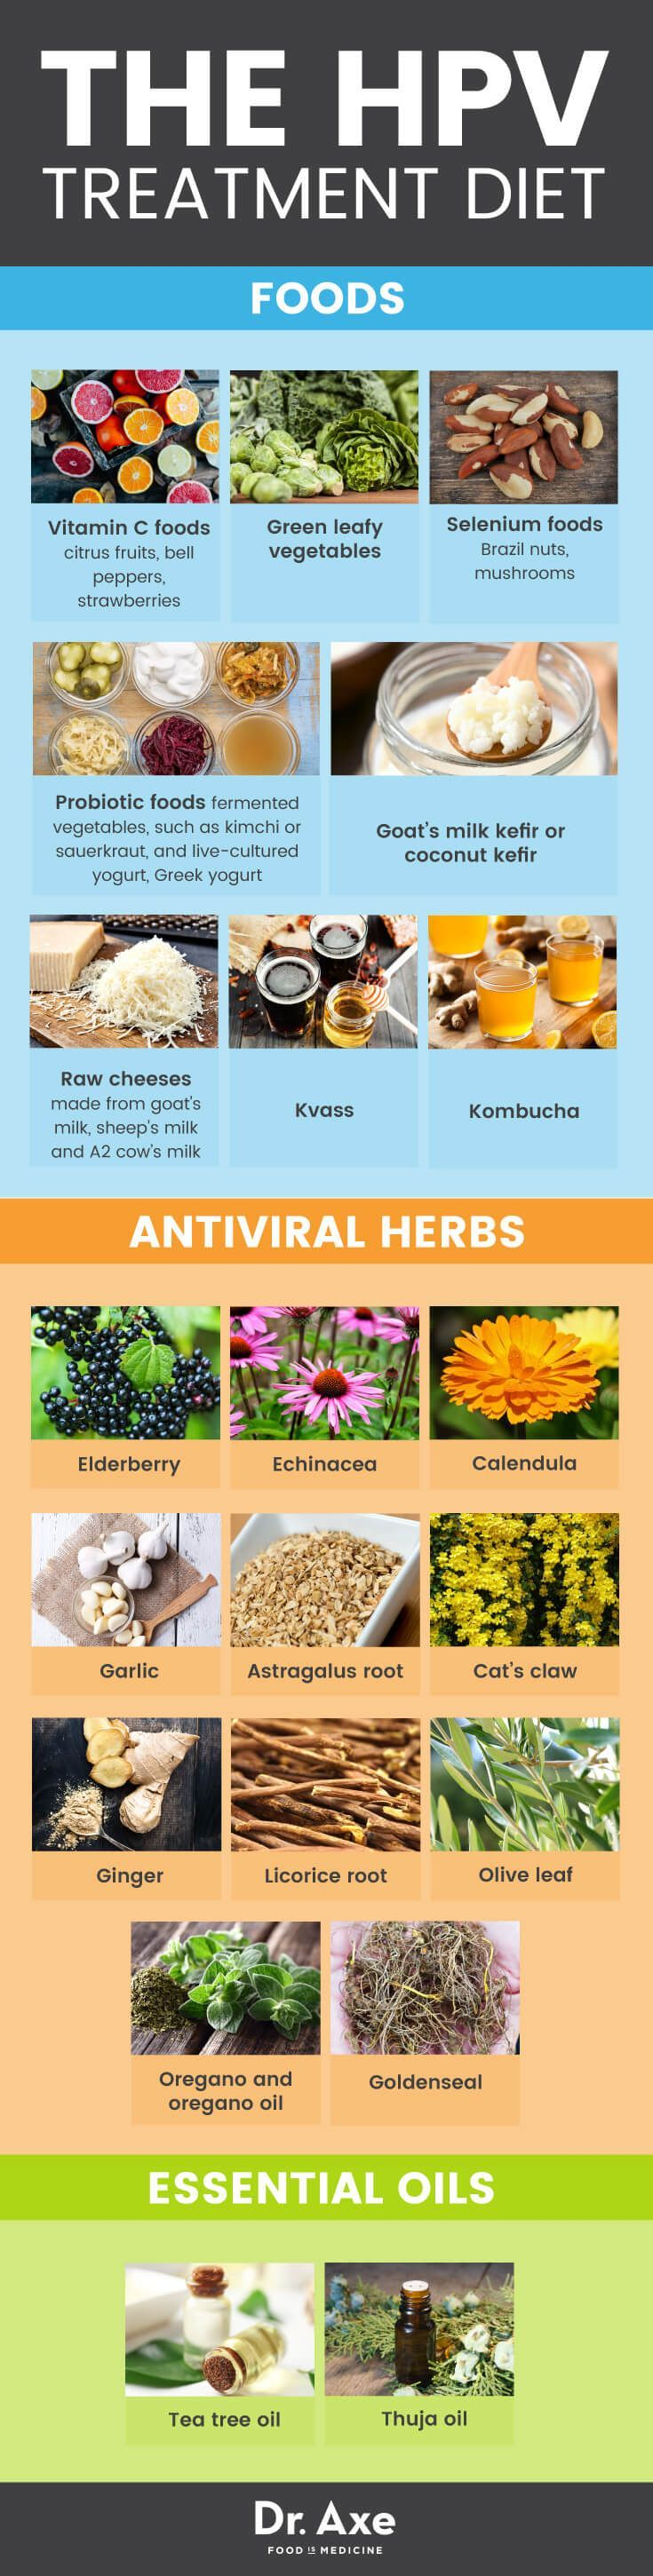 11 Anti-Viral Herbs for Fighting HPV | Eating Right | How to